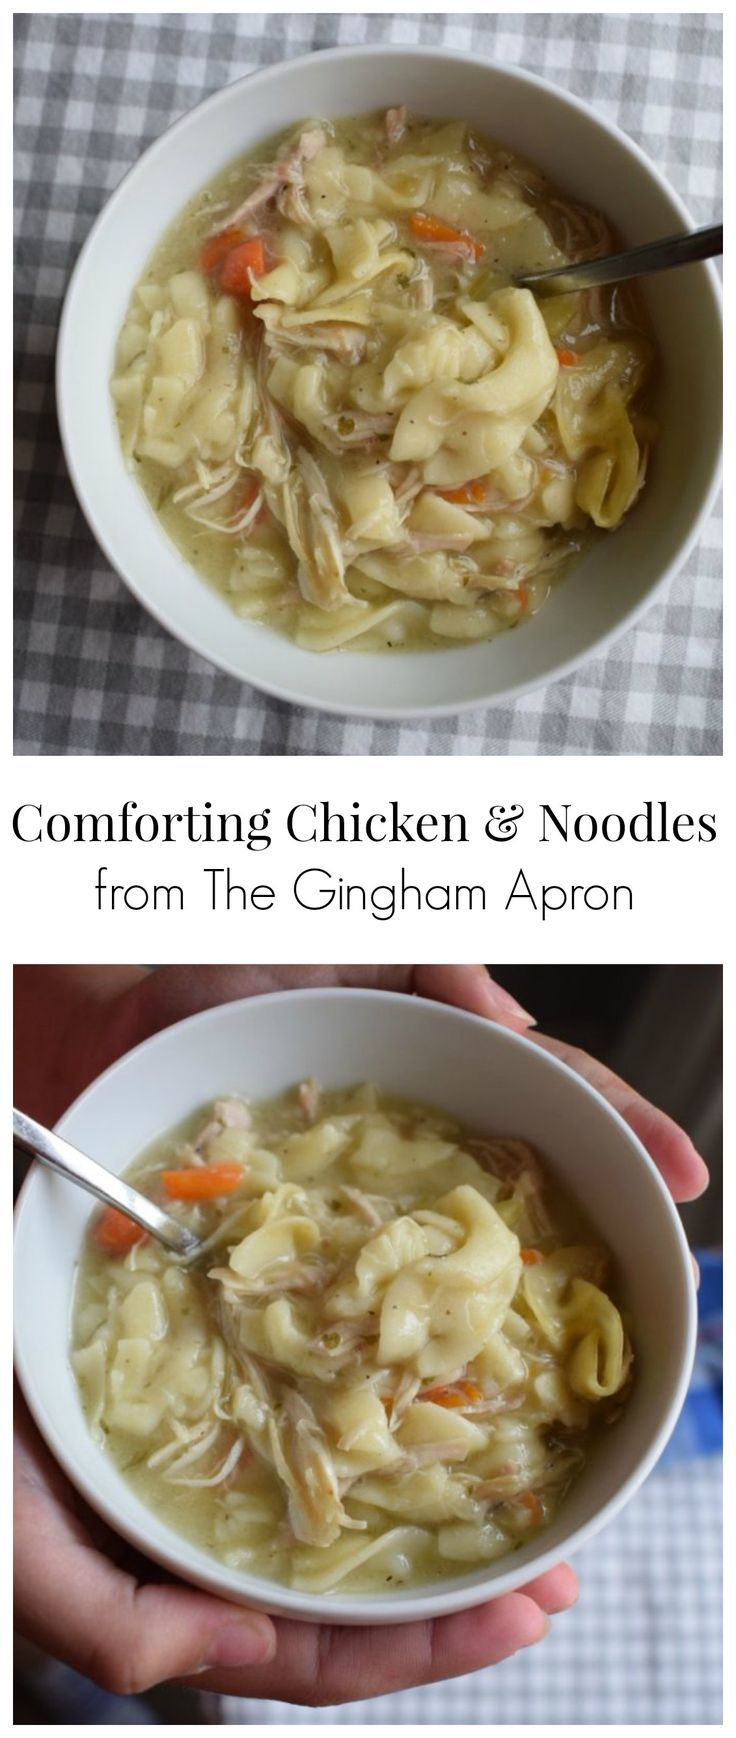 Comforting Chicken and Noodles- with chicken, noodles, chicken, and celery... and just the right flavoring to make this the ultimate comfort food. Perfect for when you are feeling a little under the weather.